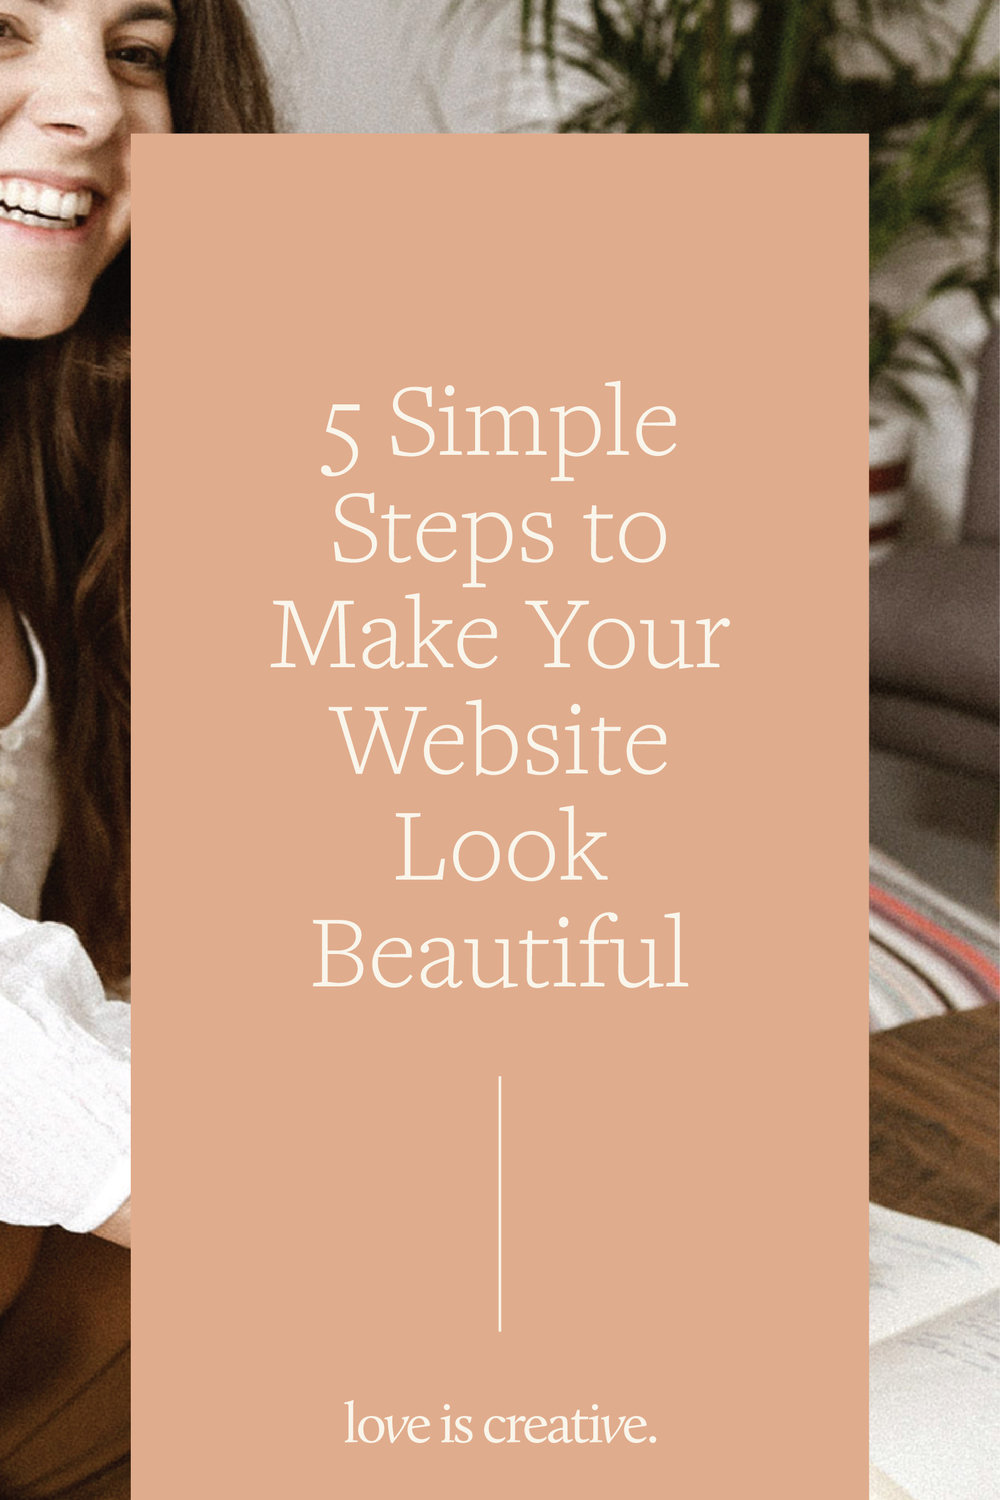 My Website Looks Ugly: 5 Simple Steps to Make it Beautiful